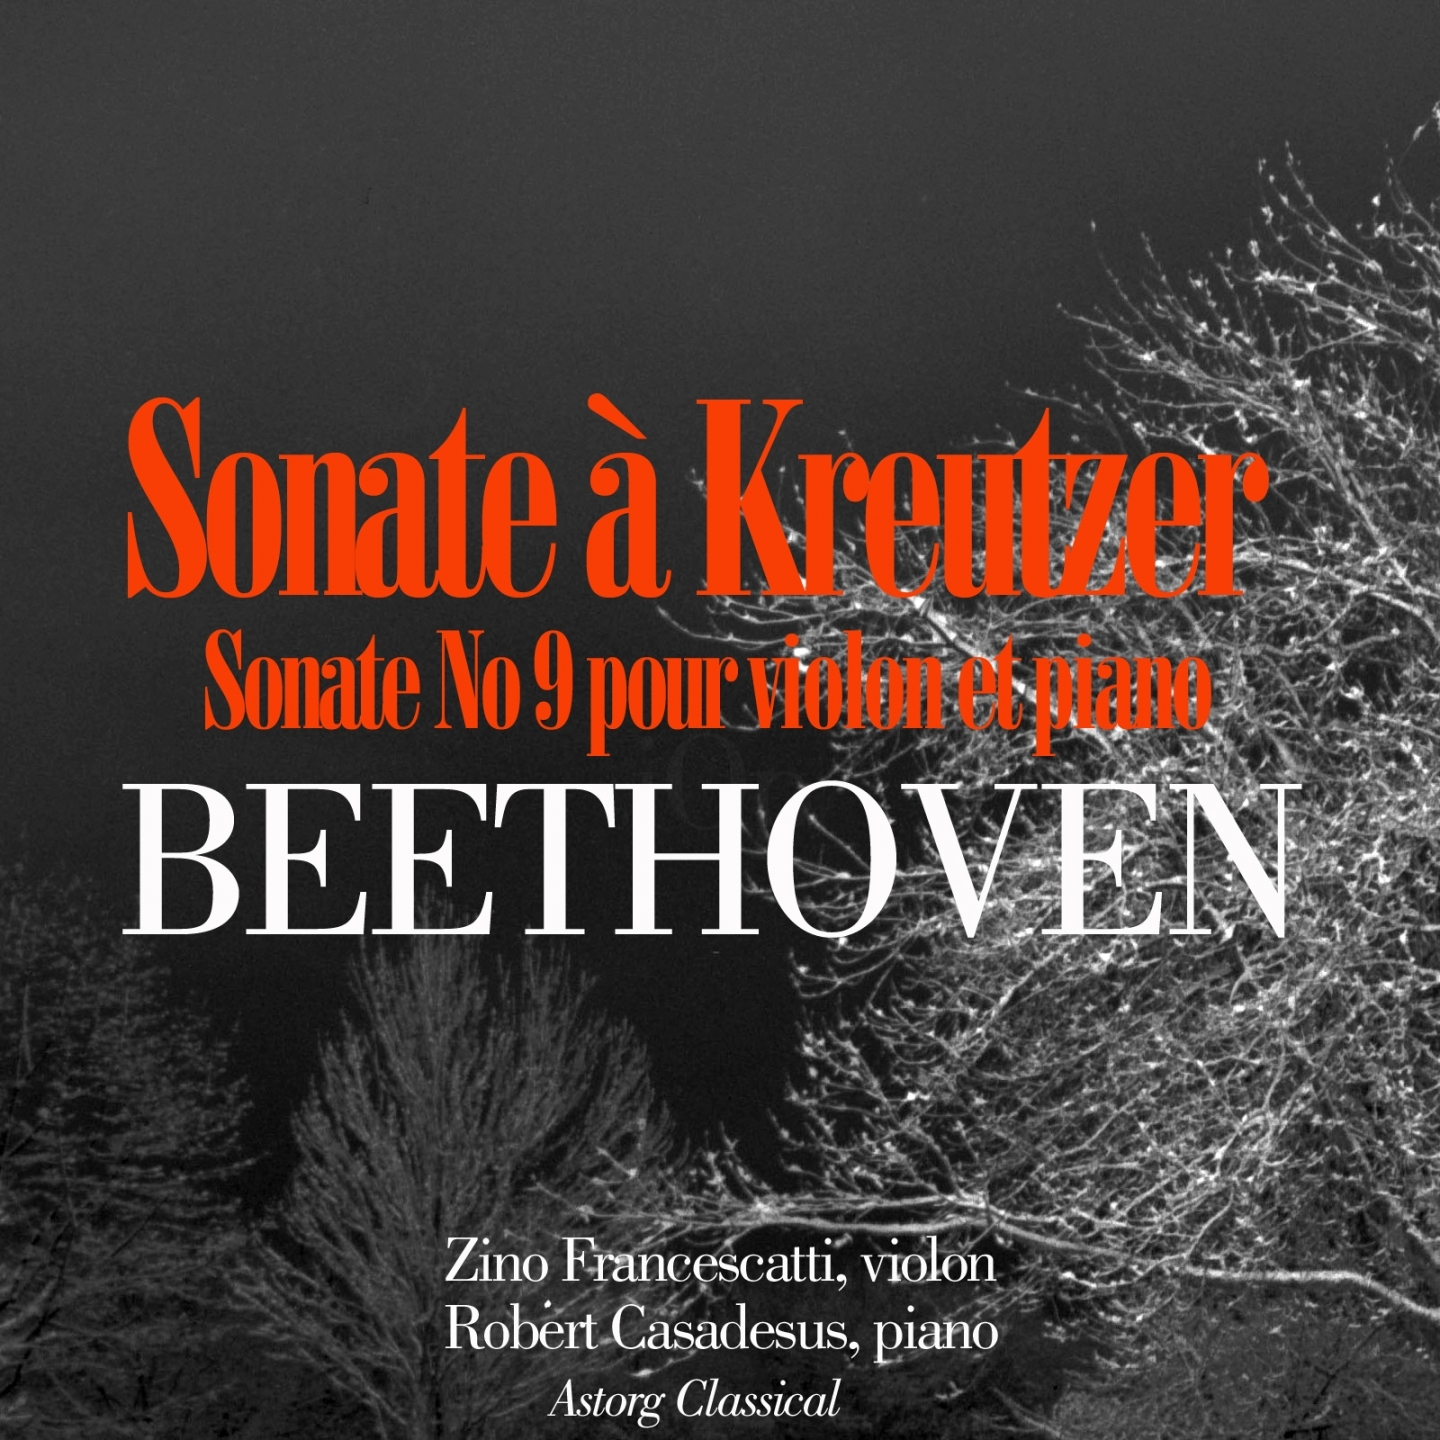 Sonata for Violin and Piano No.9 in A, Op.47, 'Kreutzer' : I. Adagio sostenuto, Presto